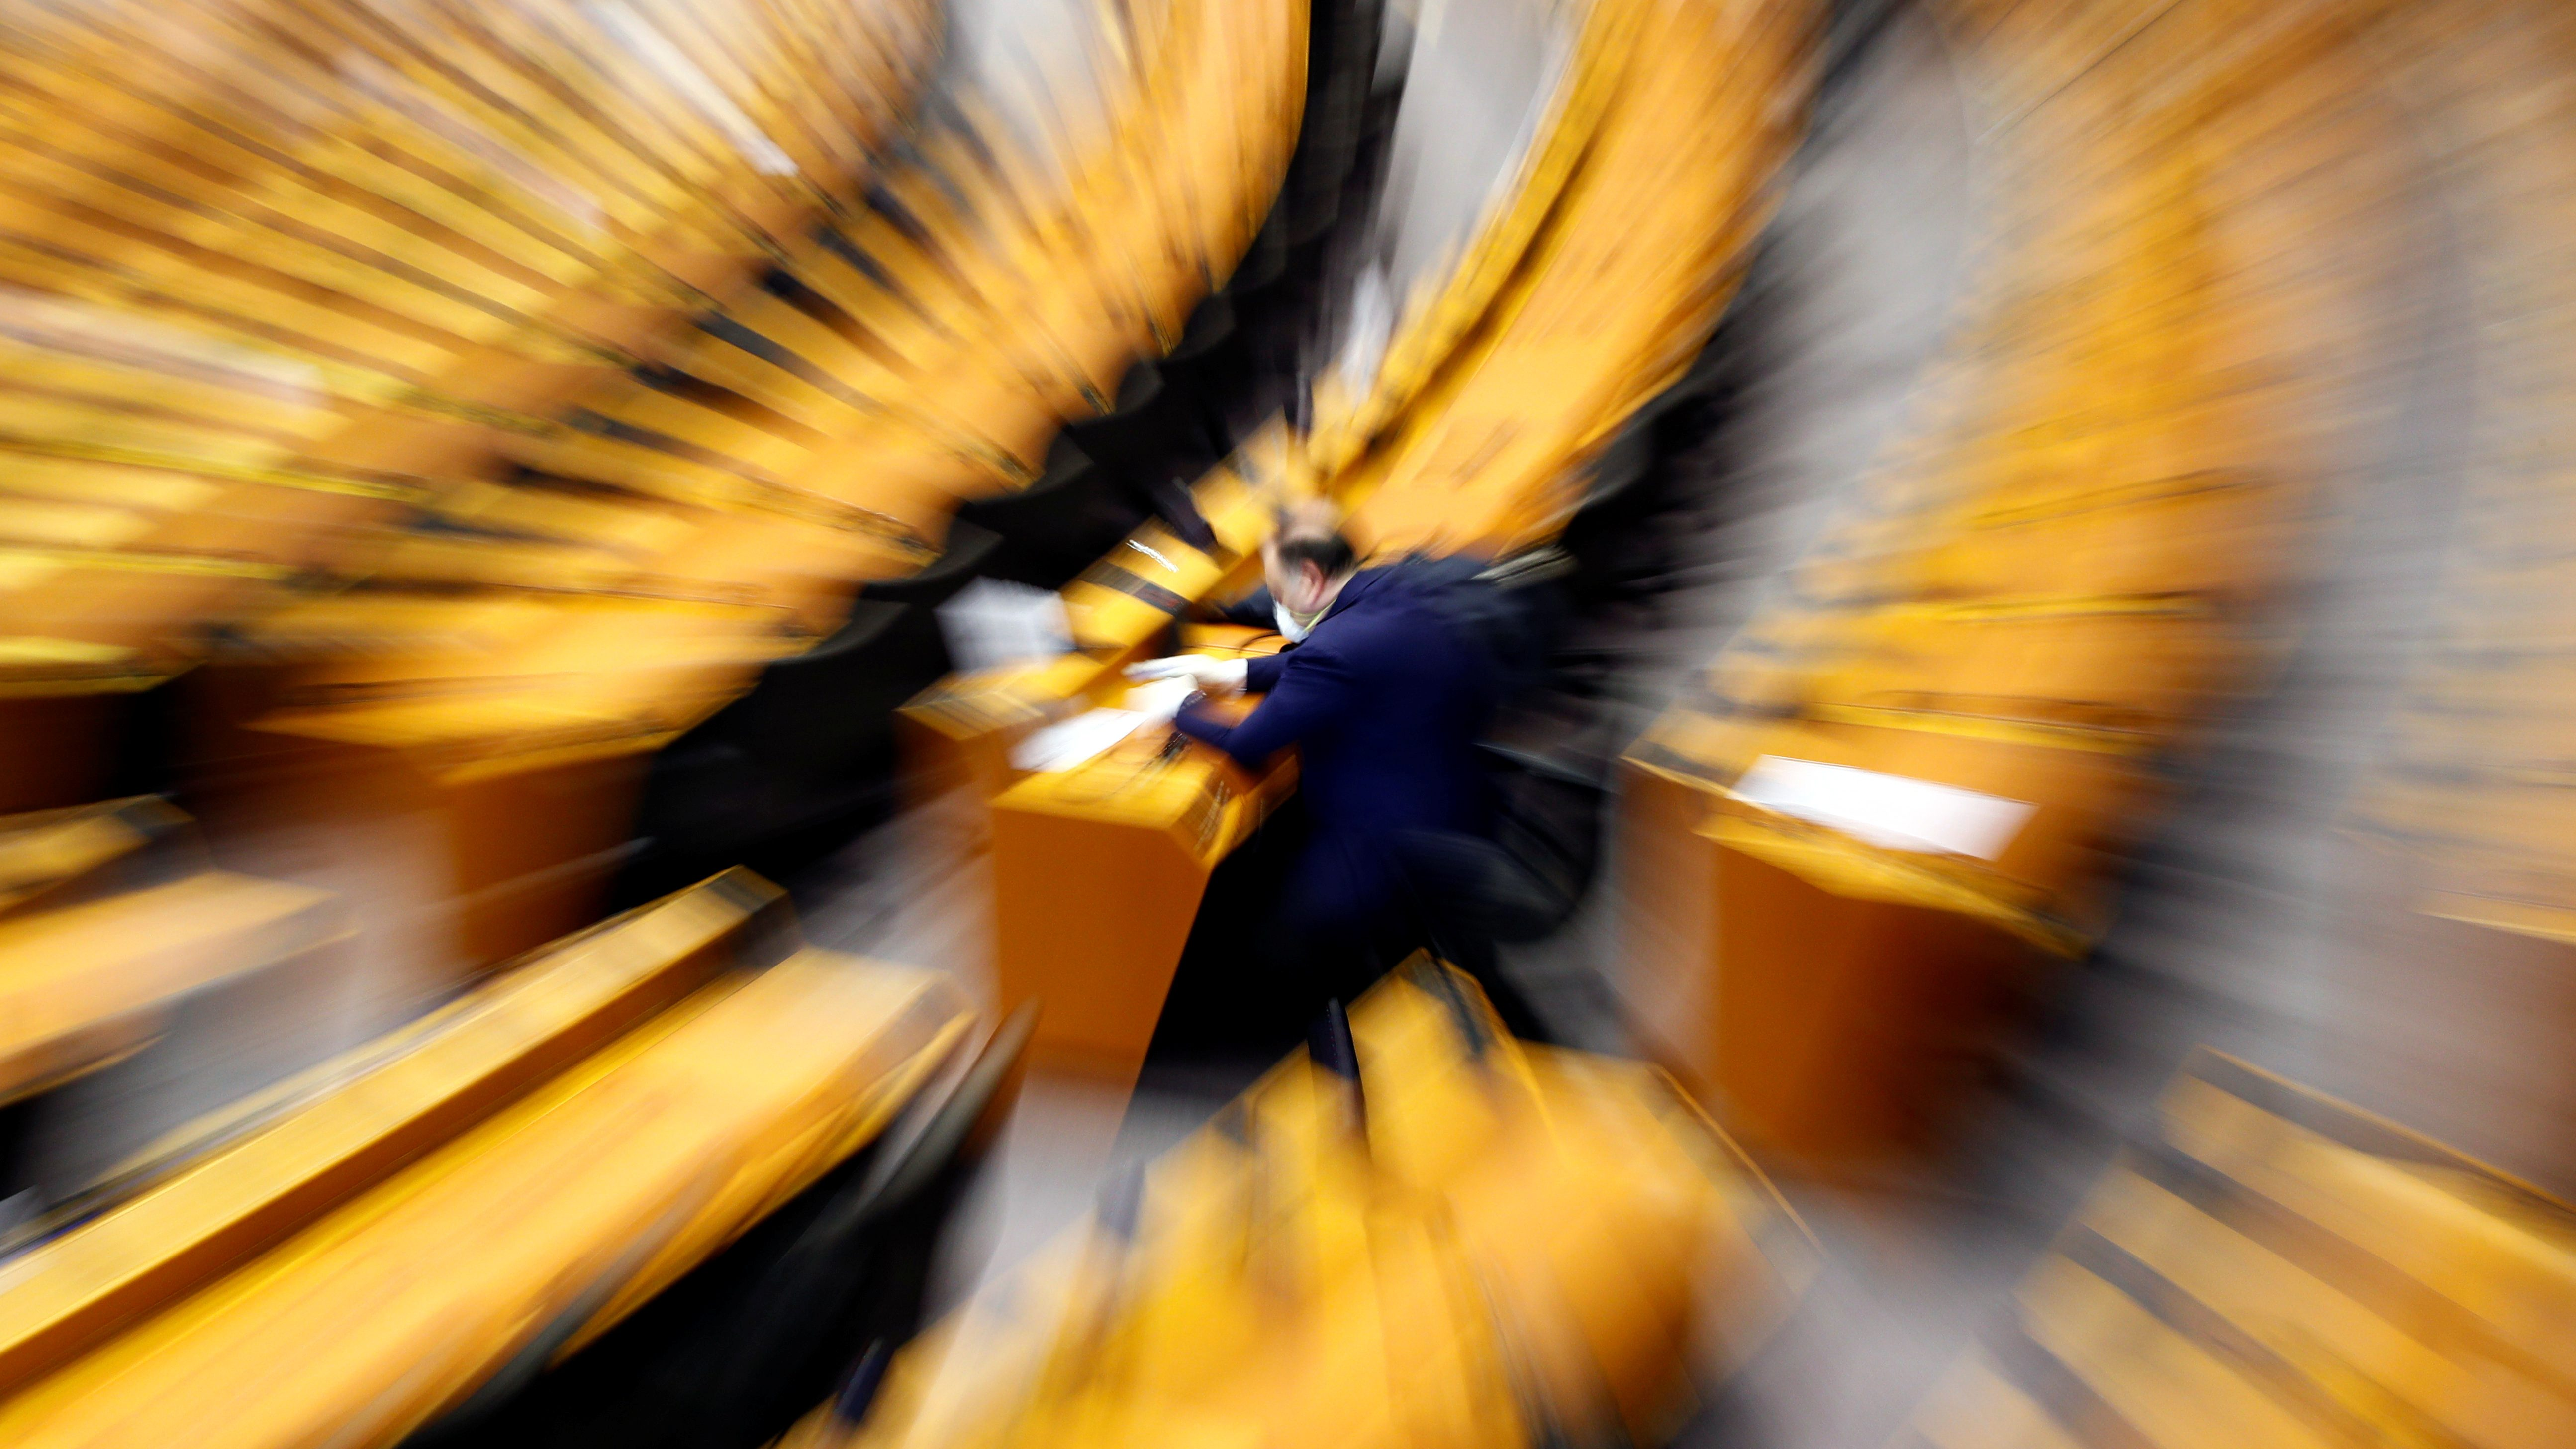 A blurry photo of the inside of the European Parliament